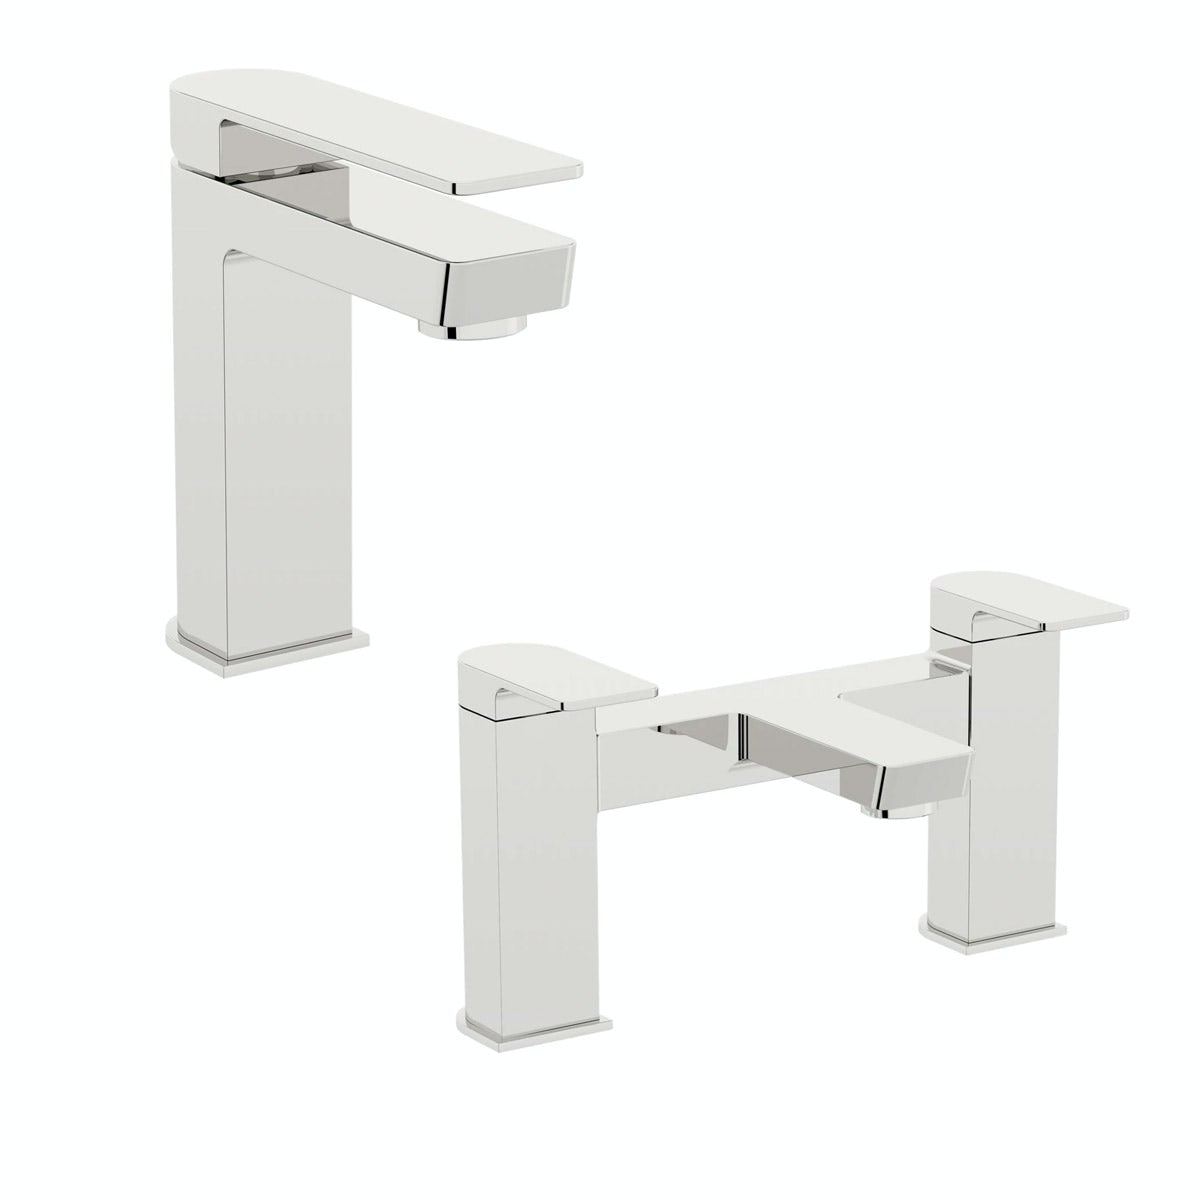 Mode Ellis basin and bath mixer tap pack